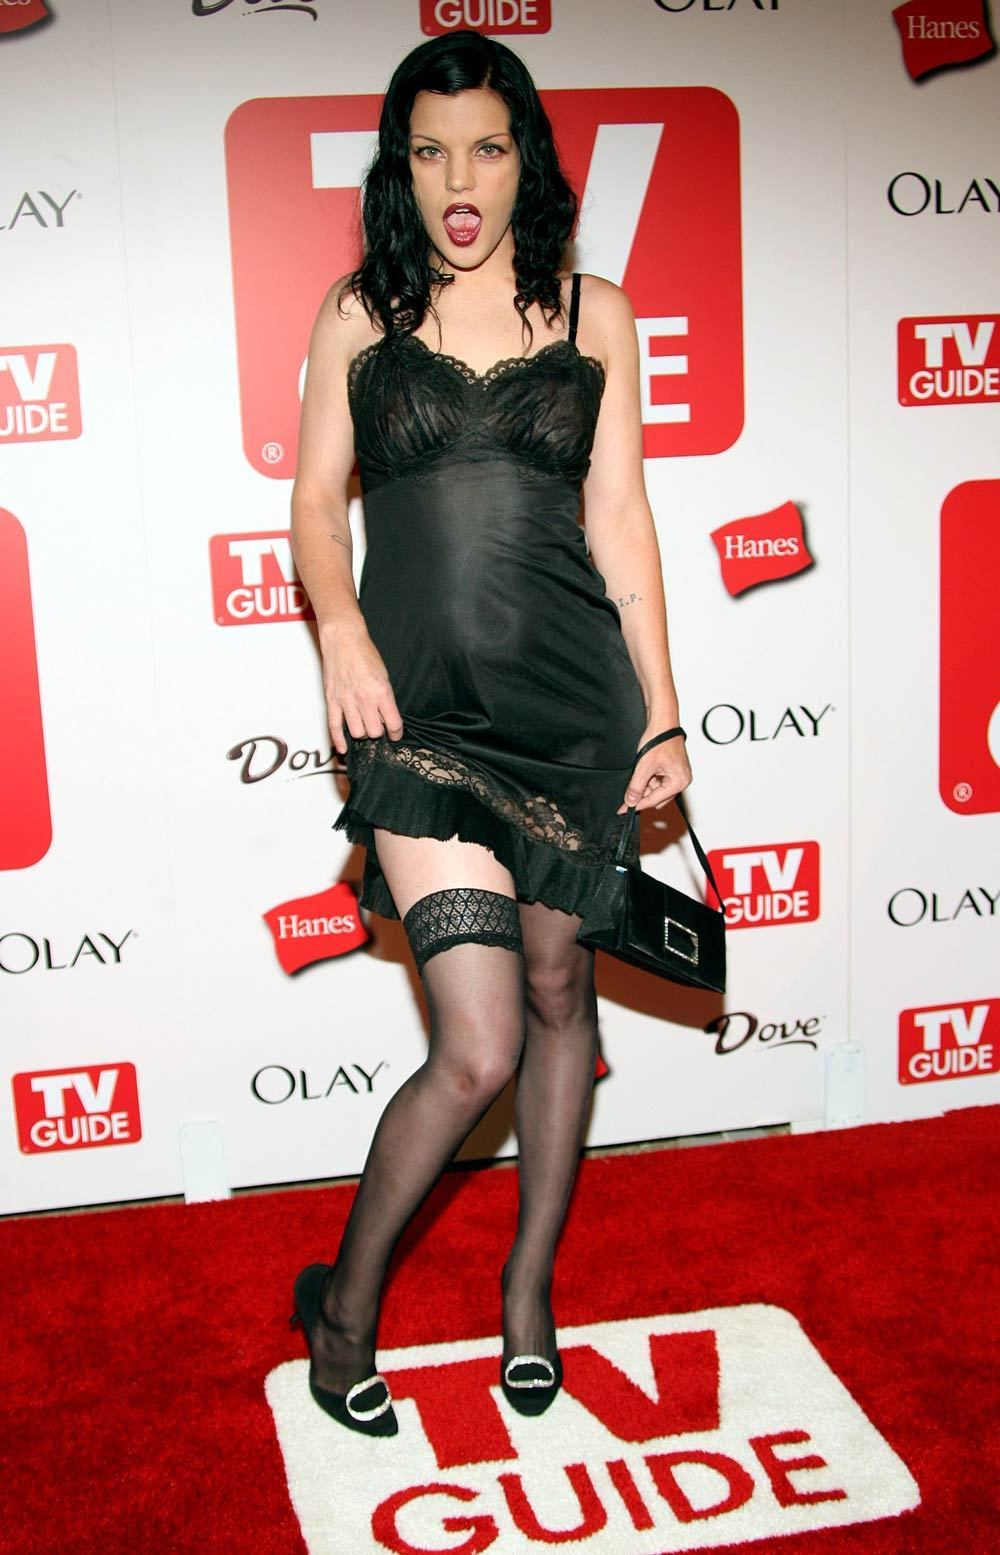 http://images2.fanpop.com/image/photos/14200000/Pauley-Perrette-pauley-perrette-and-sean-murray-14257017-1000-1555.jpg